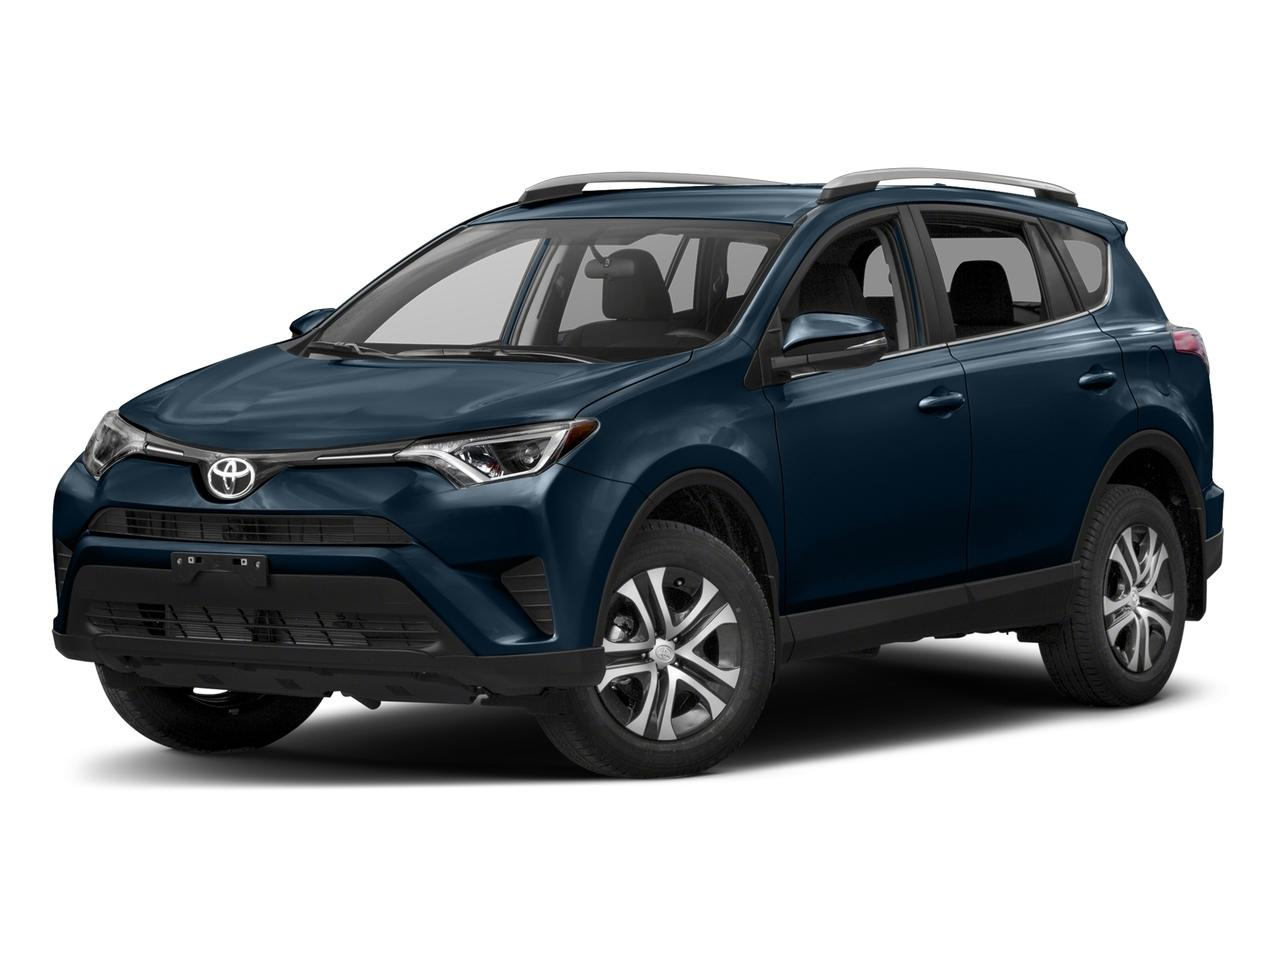 2017 Toyota RAV4 Vehicle Photo in Medina, OH 44256